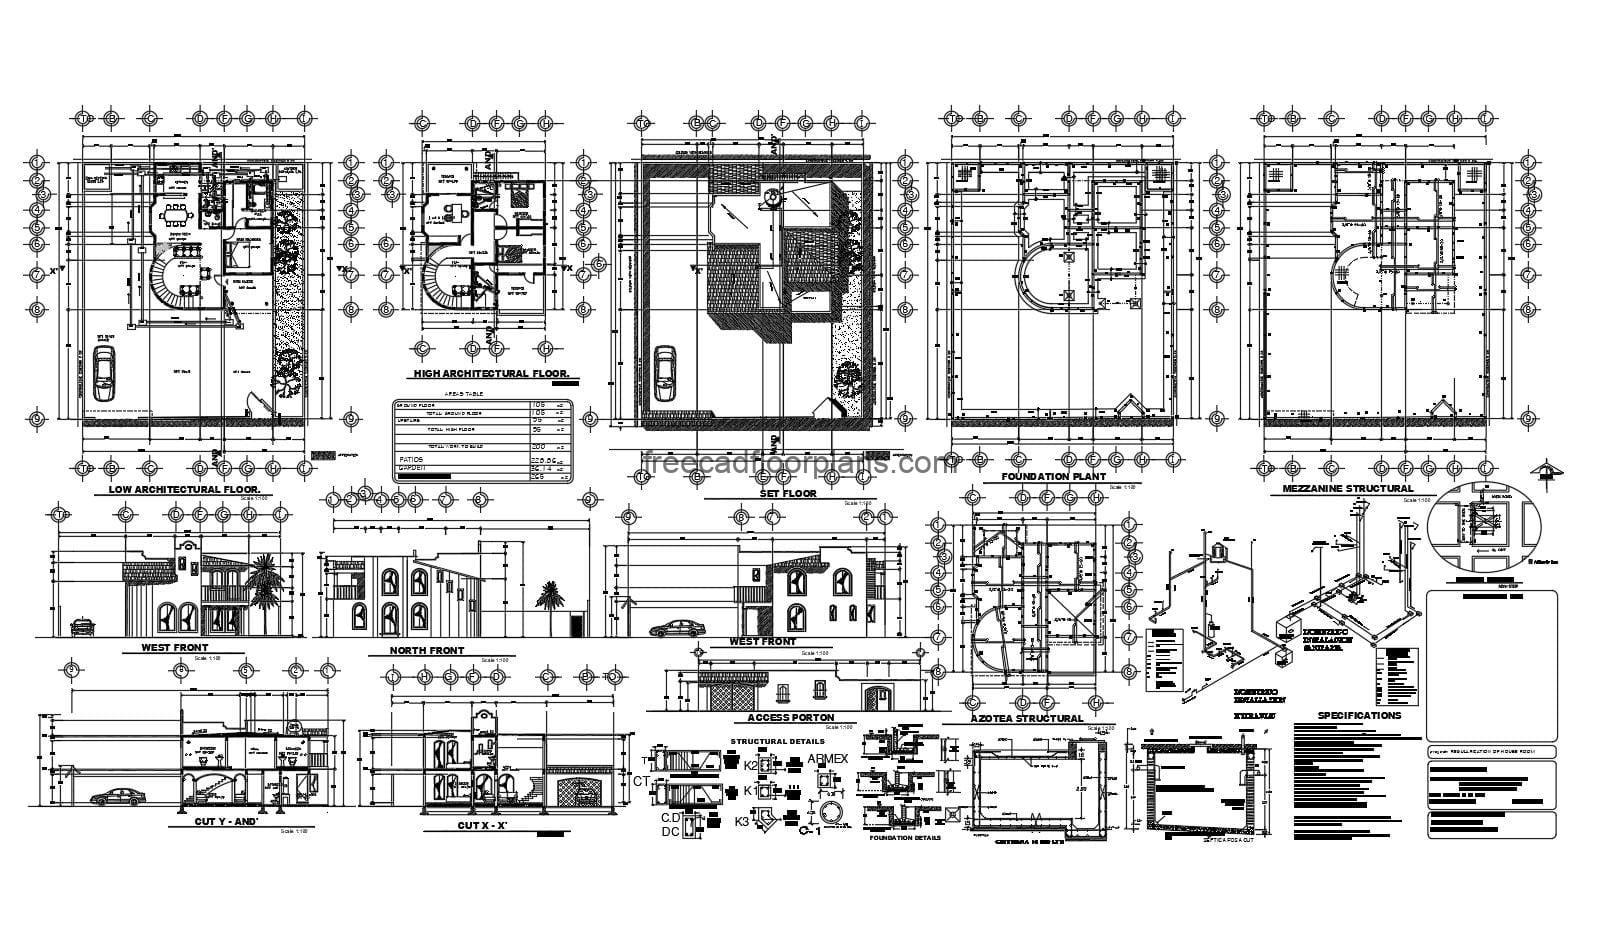 Complete architectural project of construction plans in DWG format for free download of small two-level house. Blueprints with sanitary details, foundation, elevations and architectural dimensioned plants, small residence of easy construction.